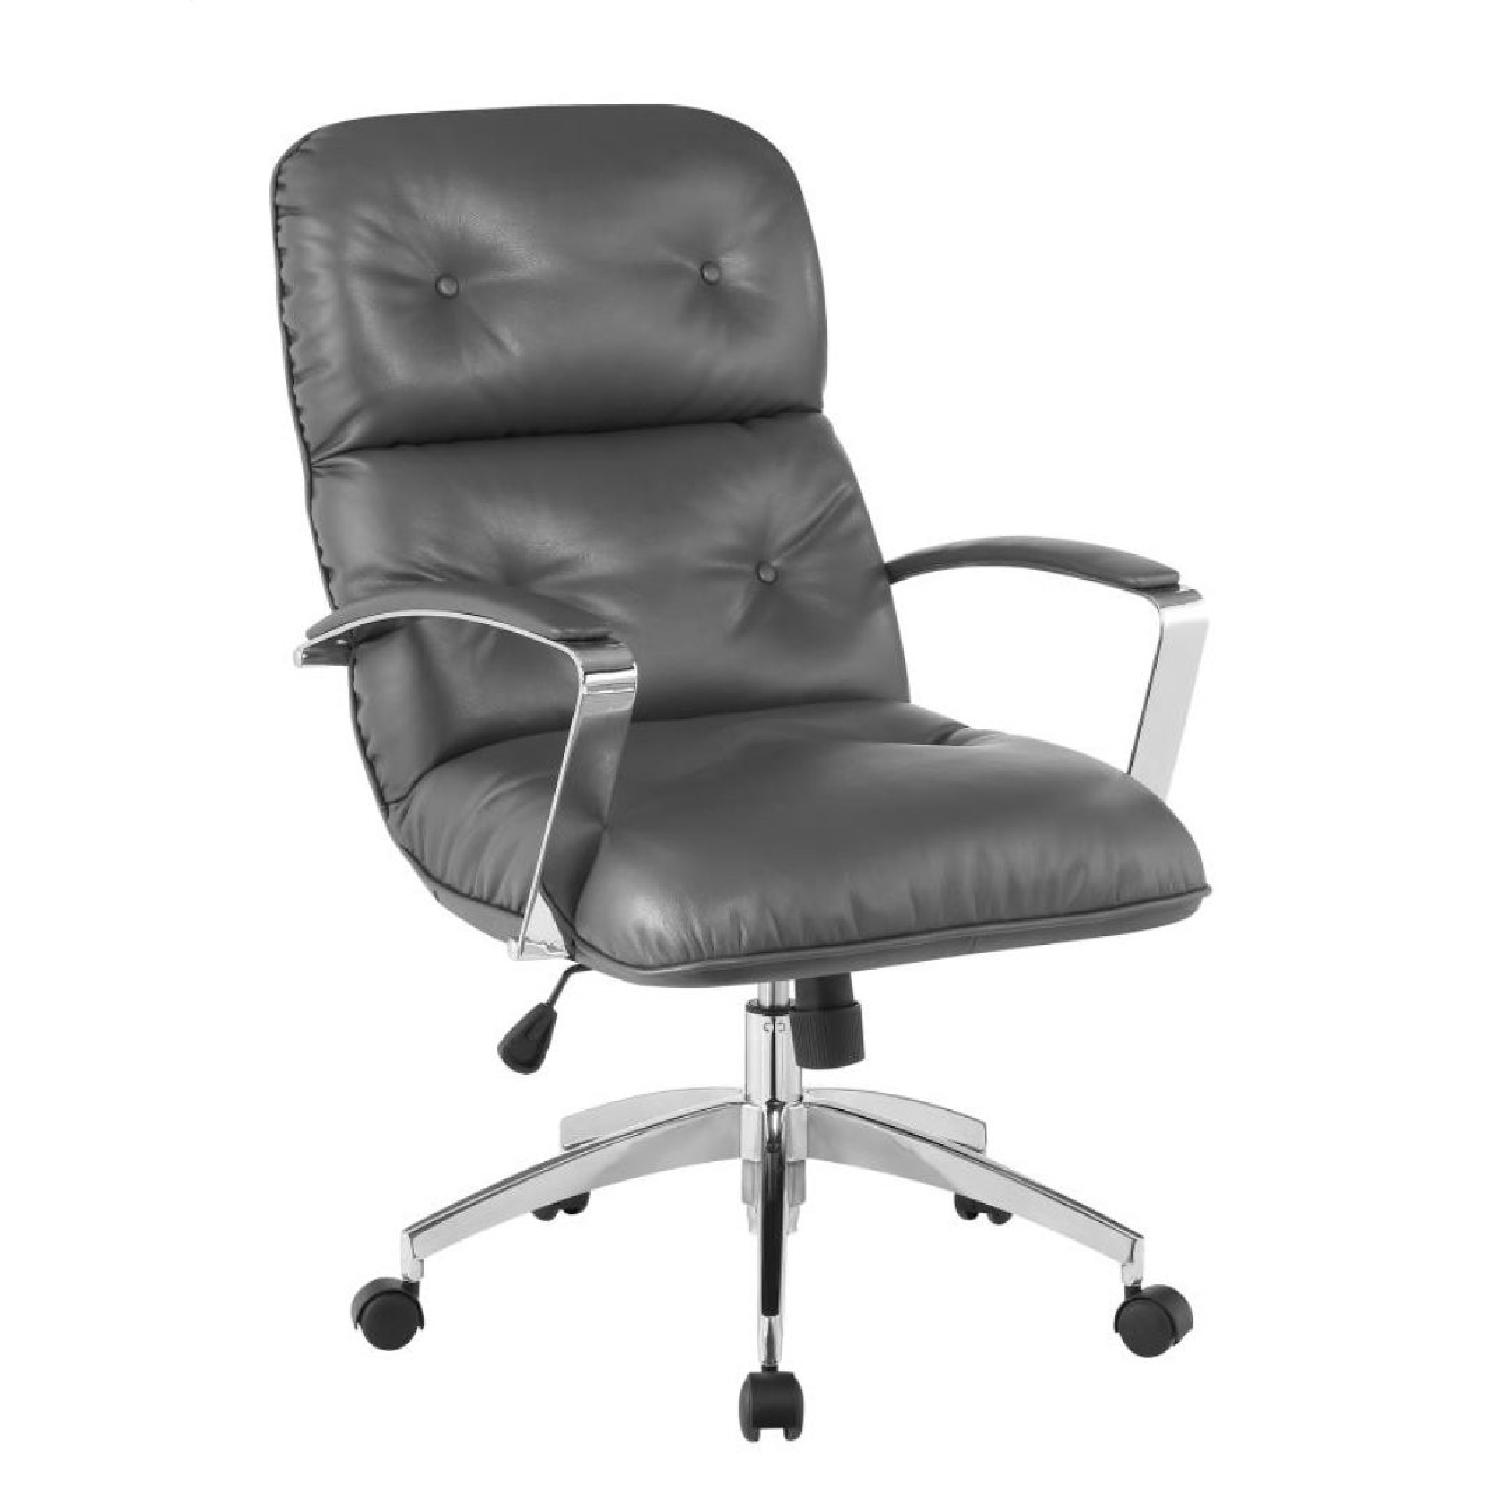 Modern Office Chair in Grey Leatherette w/ Chrome Base - image-0